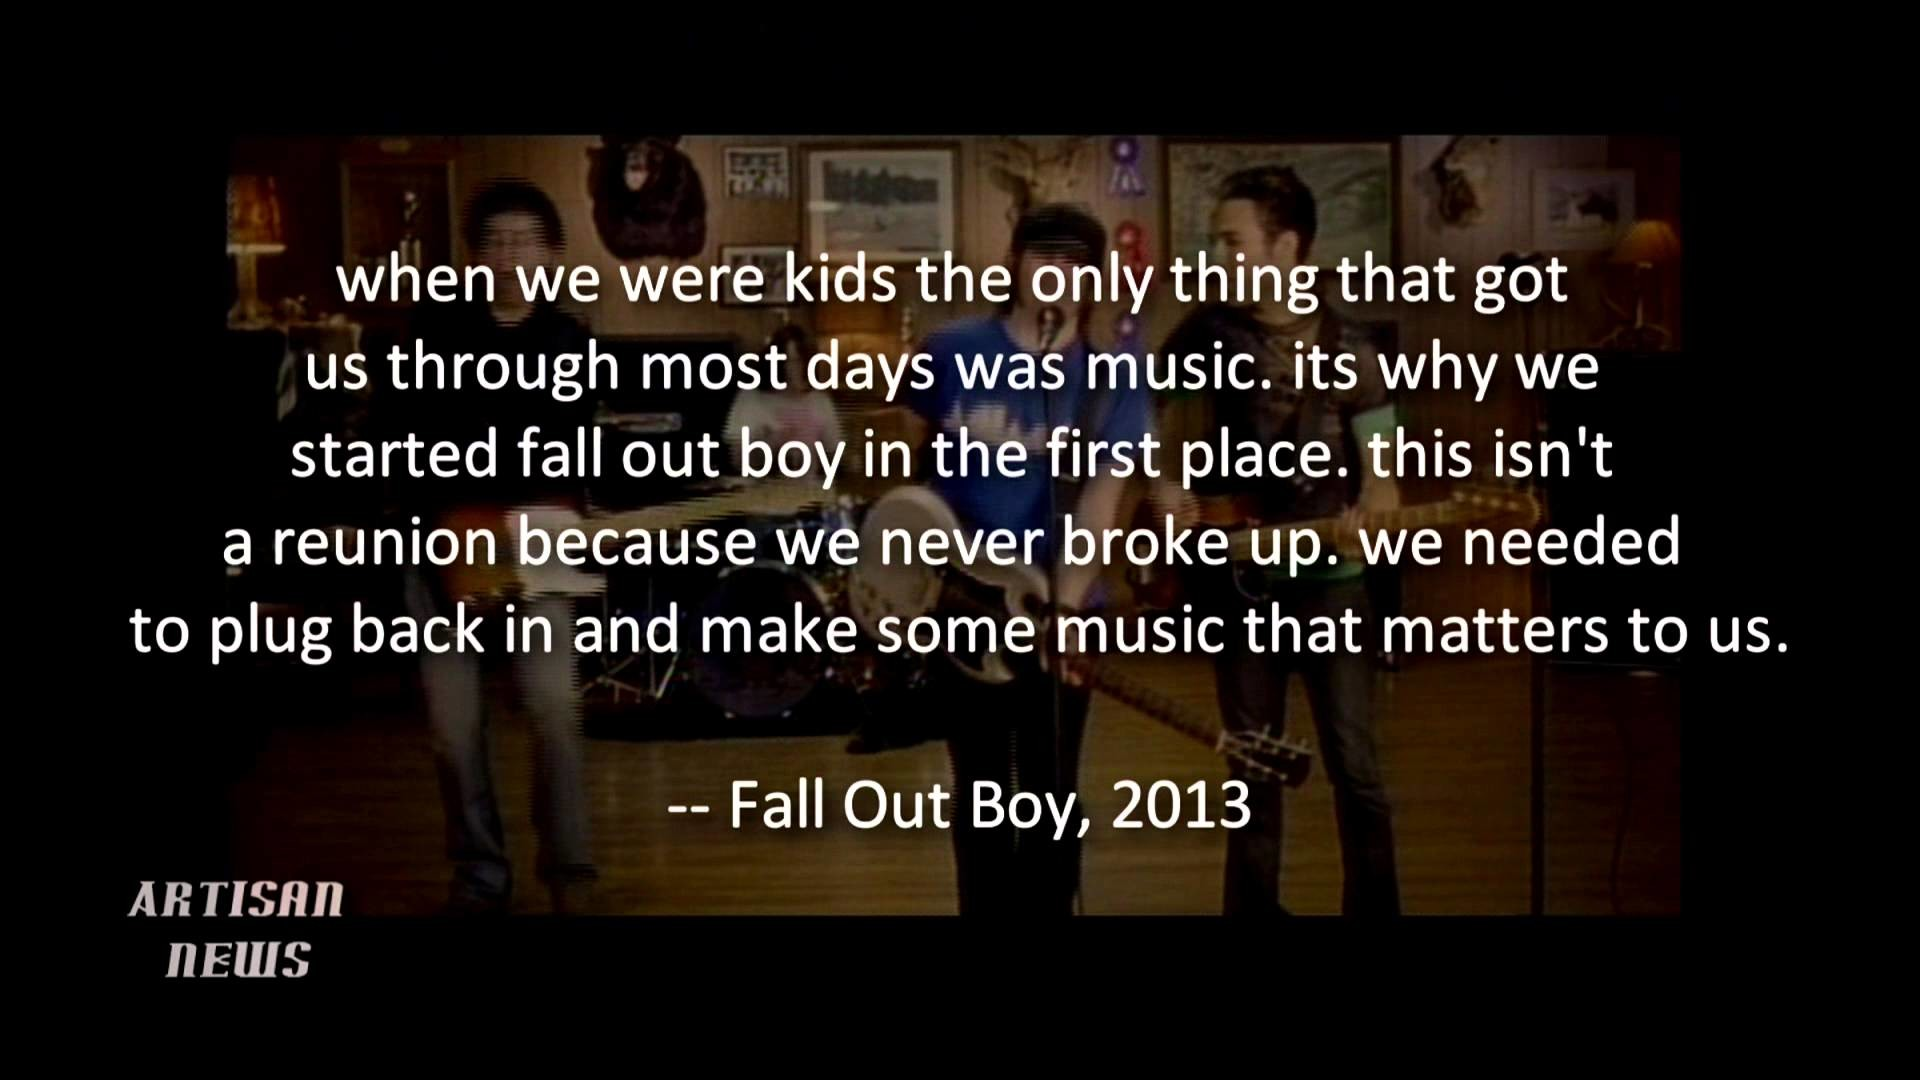 Fall Out Boy Computer Wallpaper Fall Out Boy Logo Wallpaper 77 Images